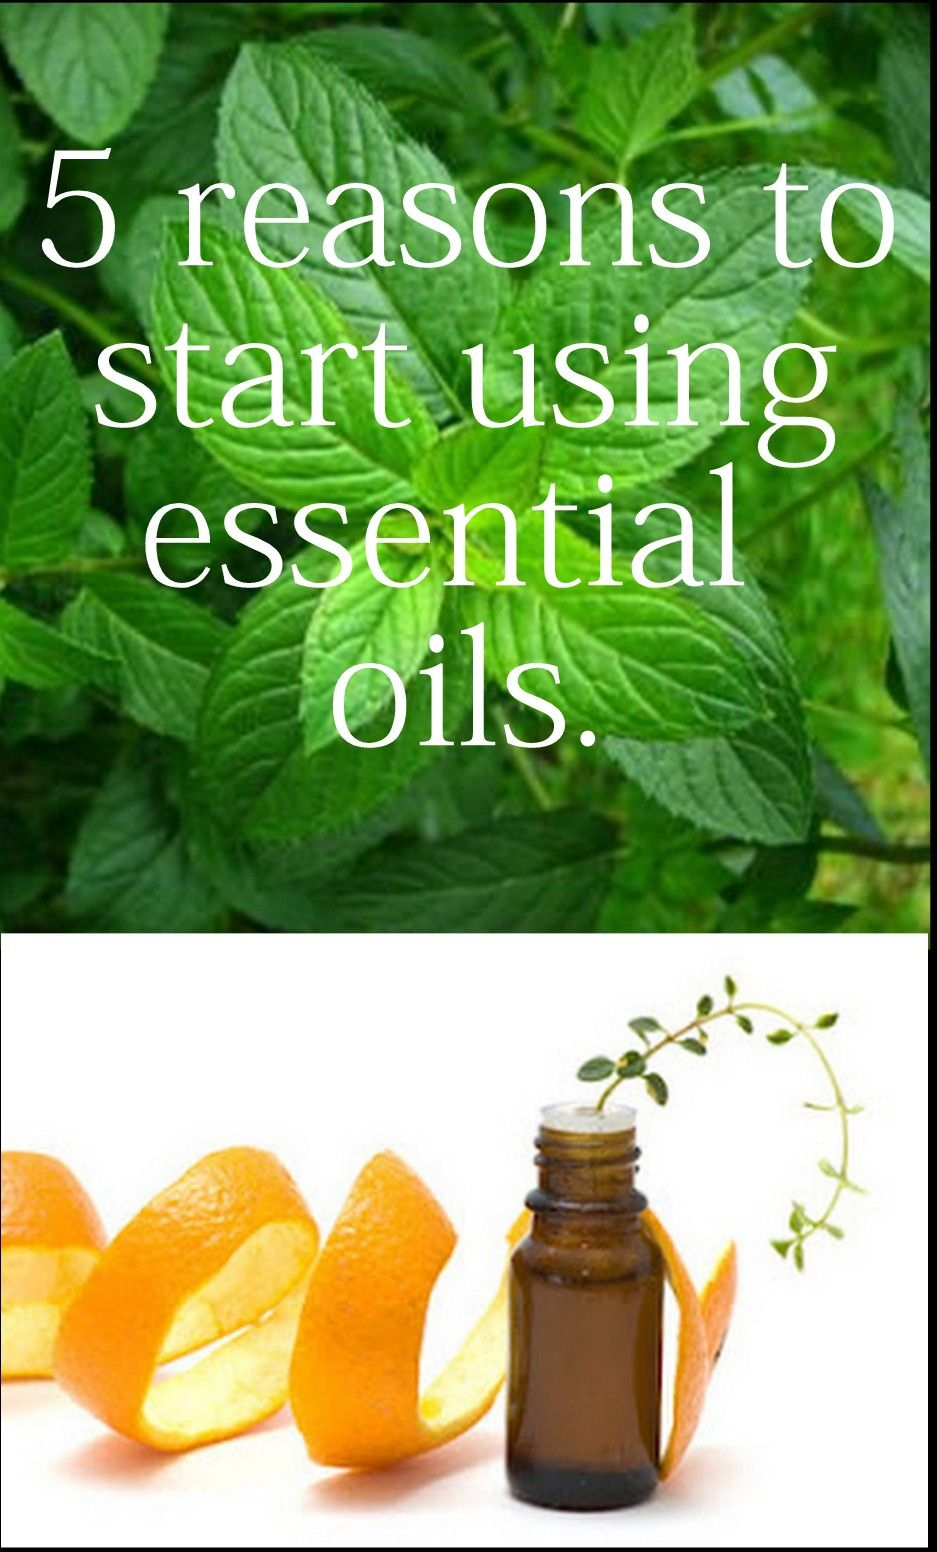 5 Essential Oils to Makeover your Medicine Cabinet